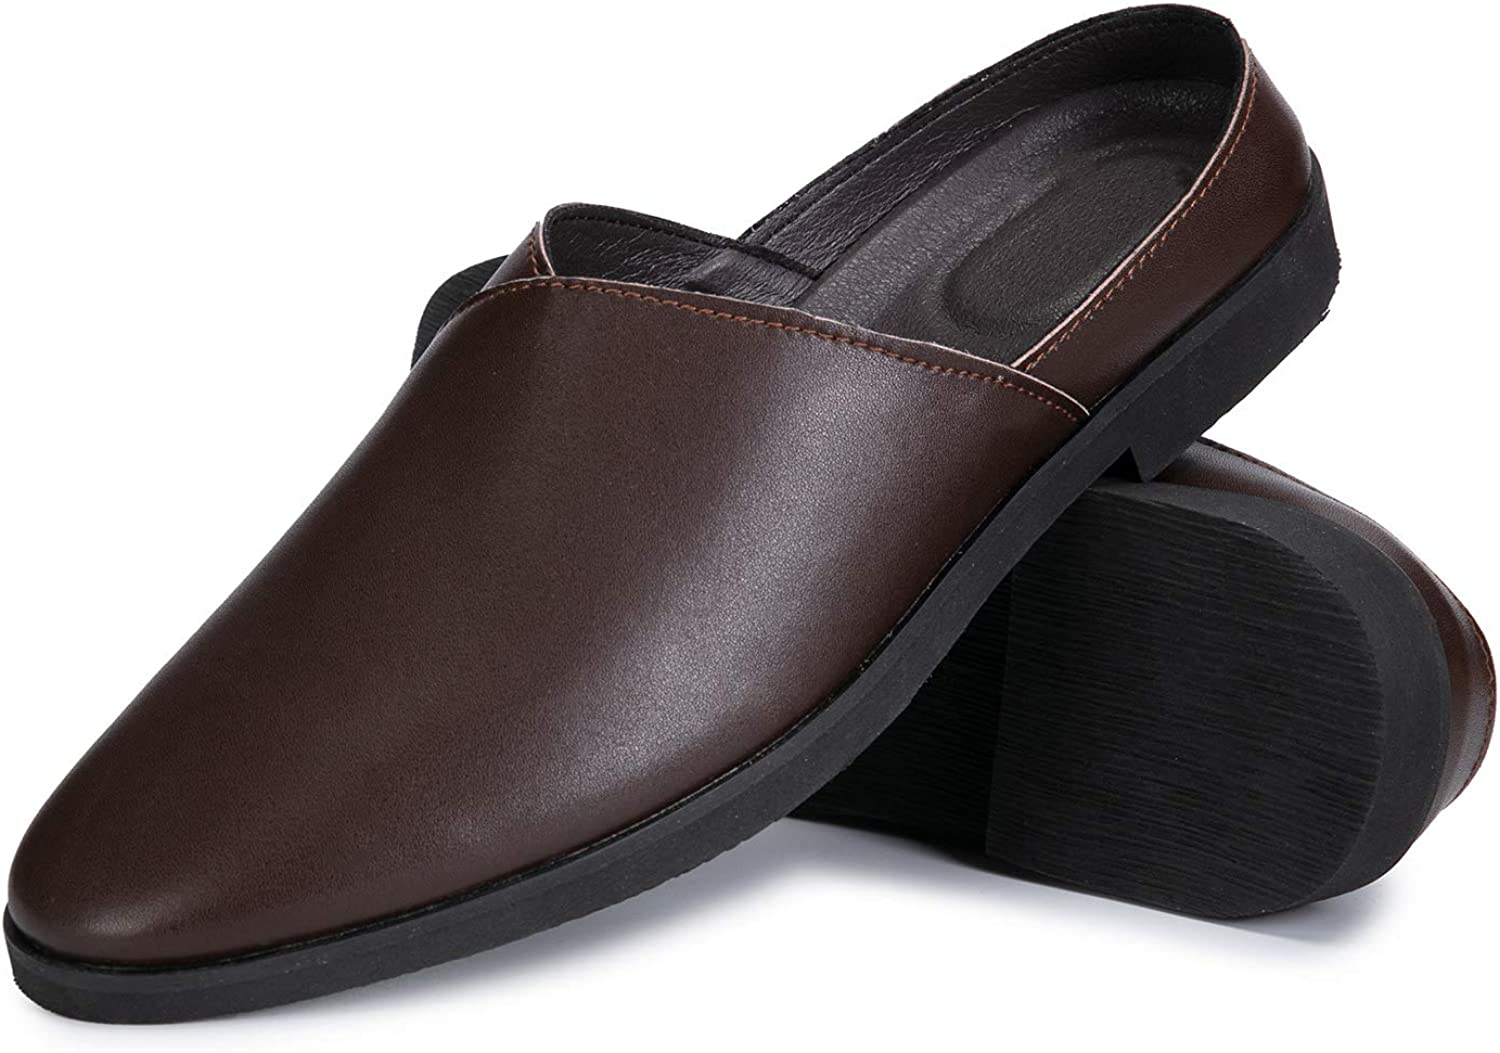 Business Oxford Loafer Backless Leather Shoes Moccasins for Men